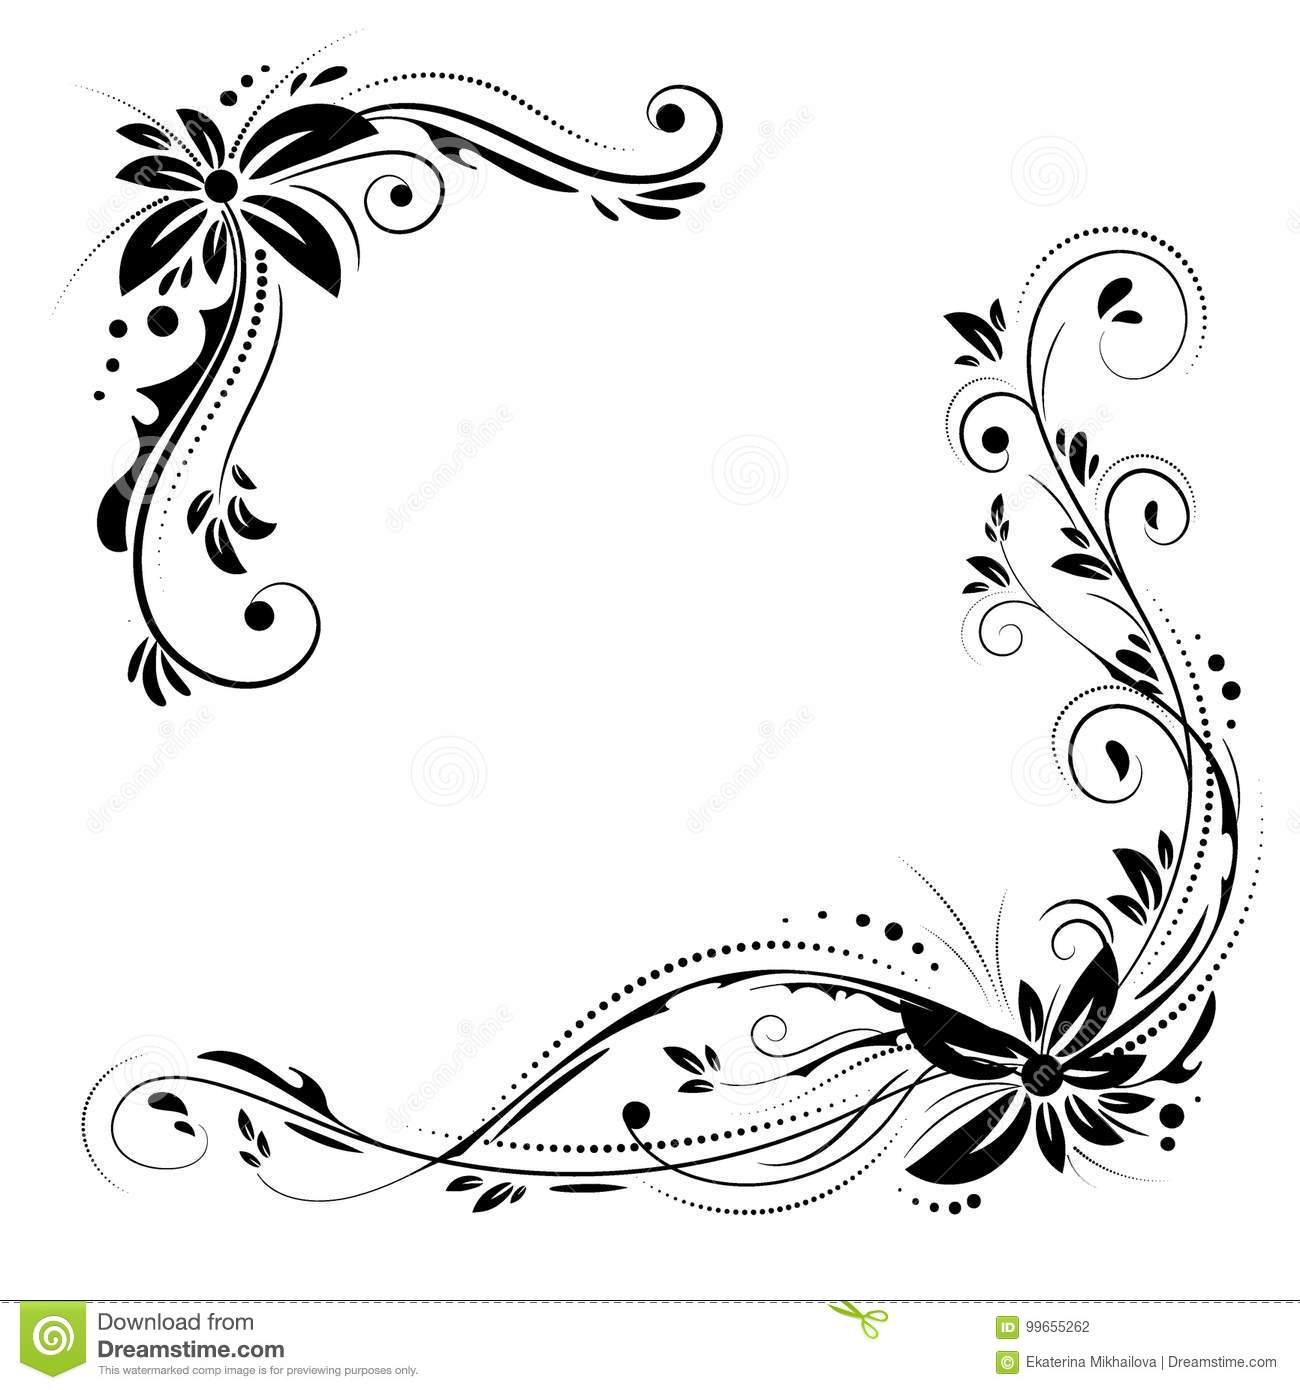 Decorative Black Flower Border Stock Image: Floral Corner Design. Ornament Black Flowers On White